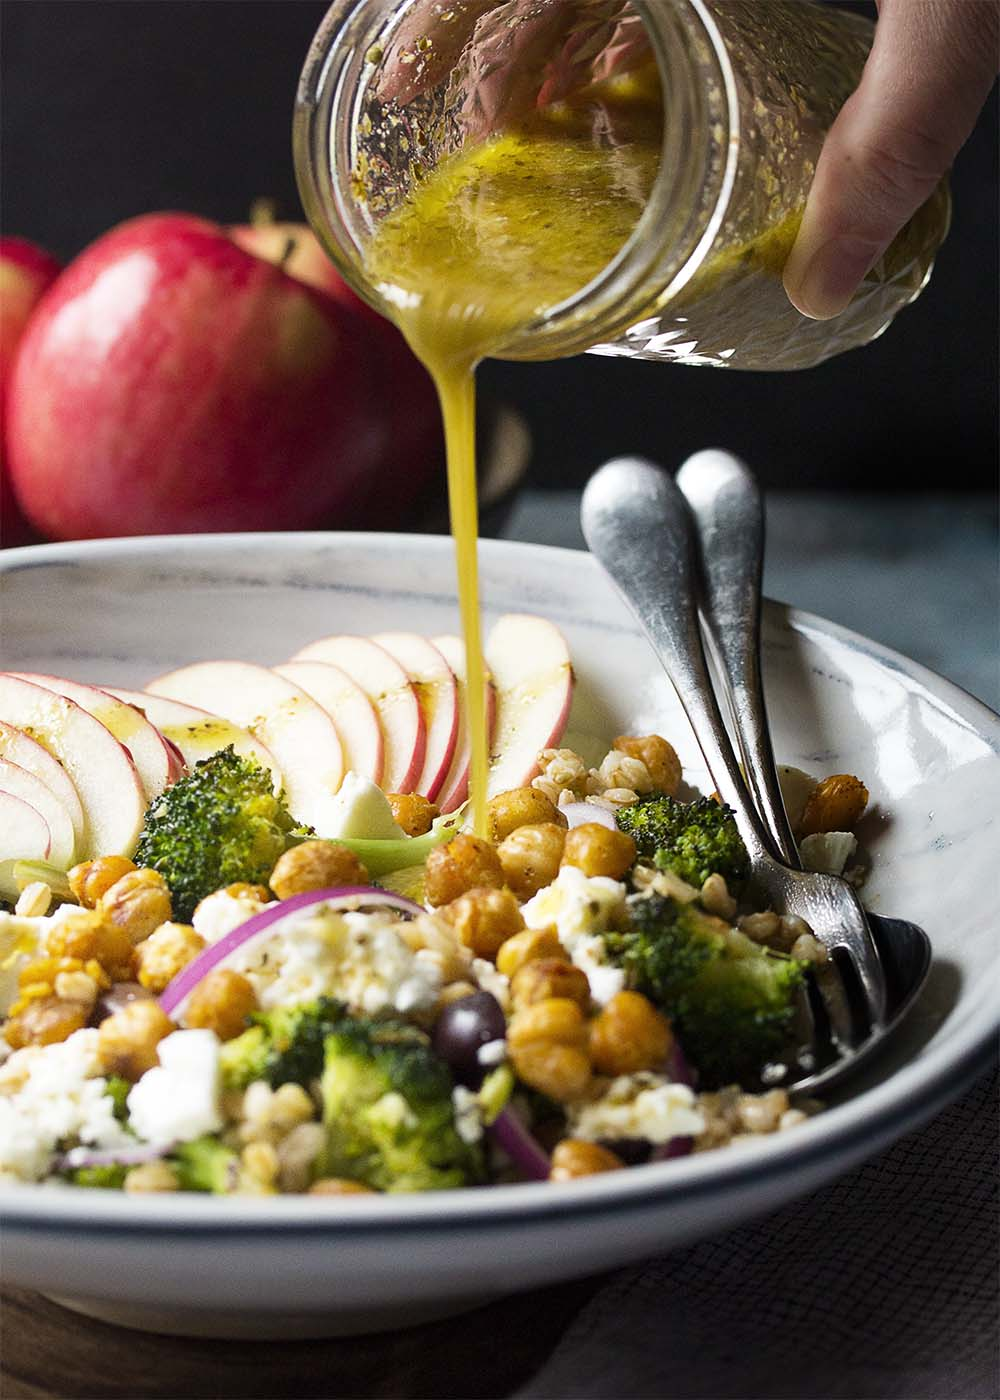 Pouring Greek dressing onto the Mediterranean farro salad with roasted broccoli, chickpeas, and apples.